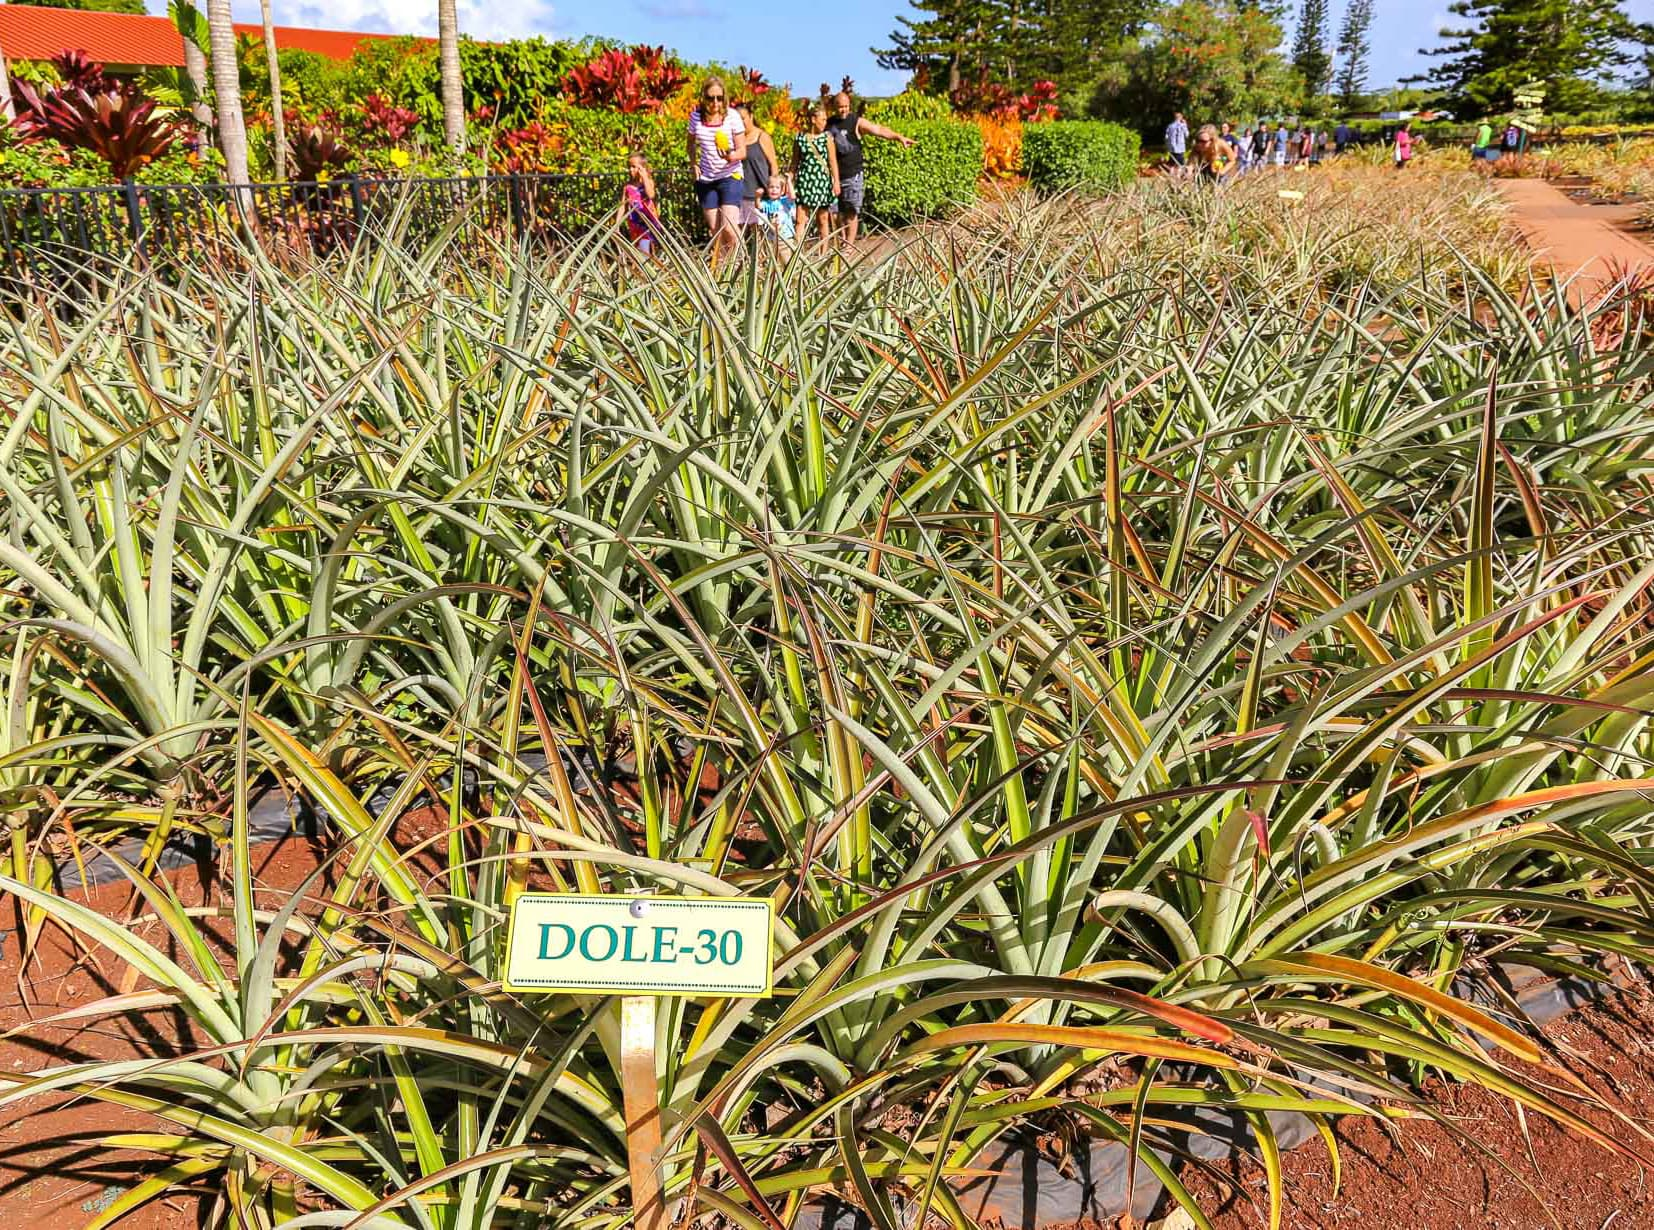 Dole Pineapple Field Sign